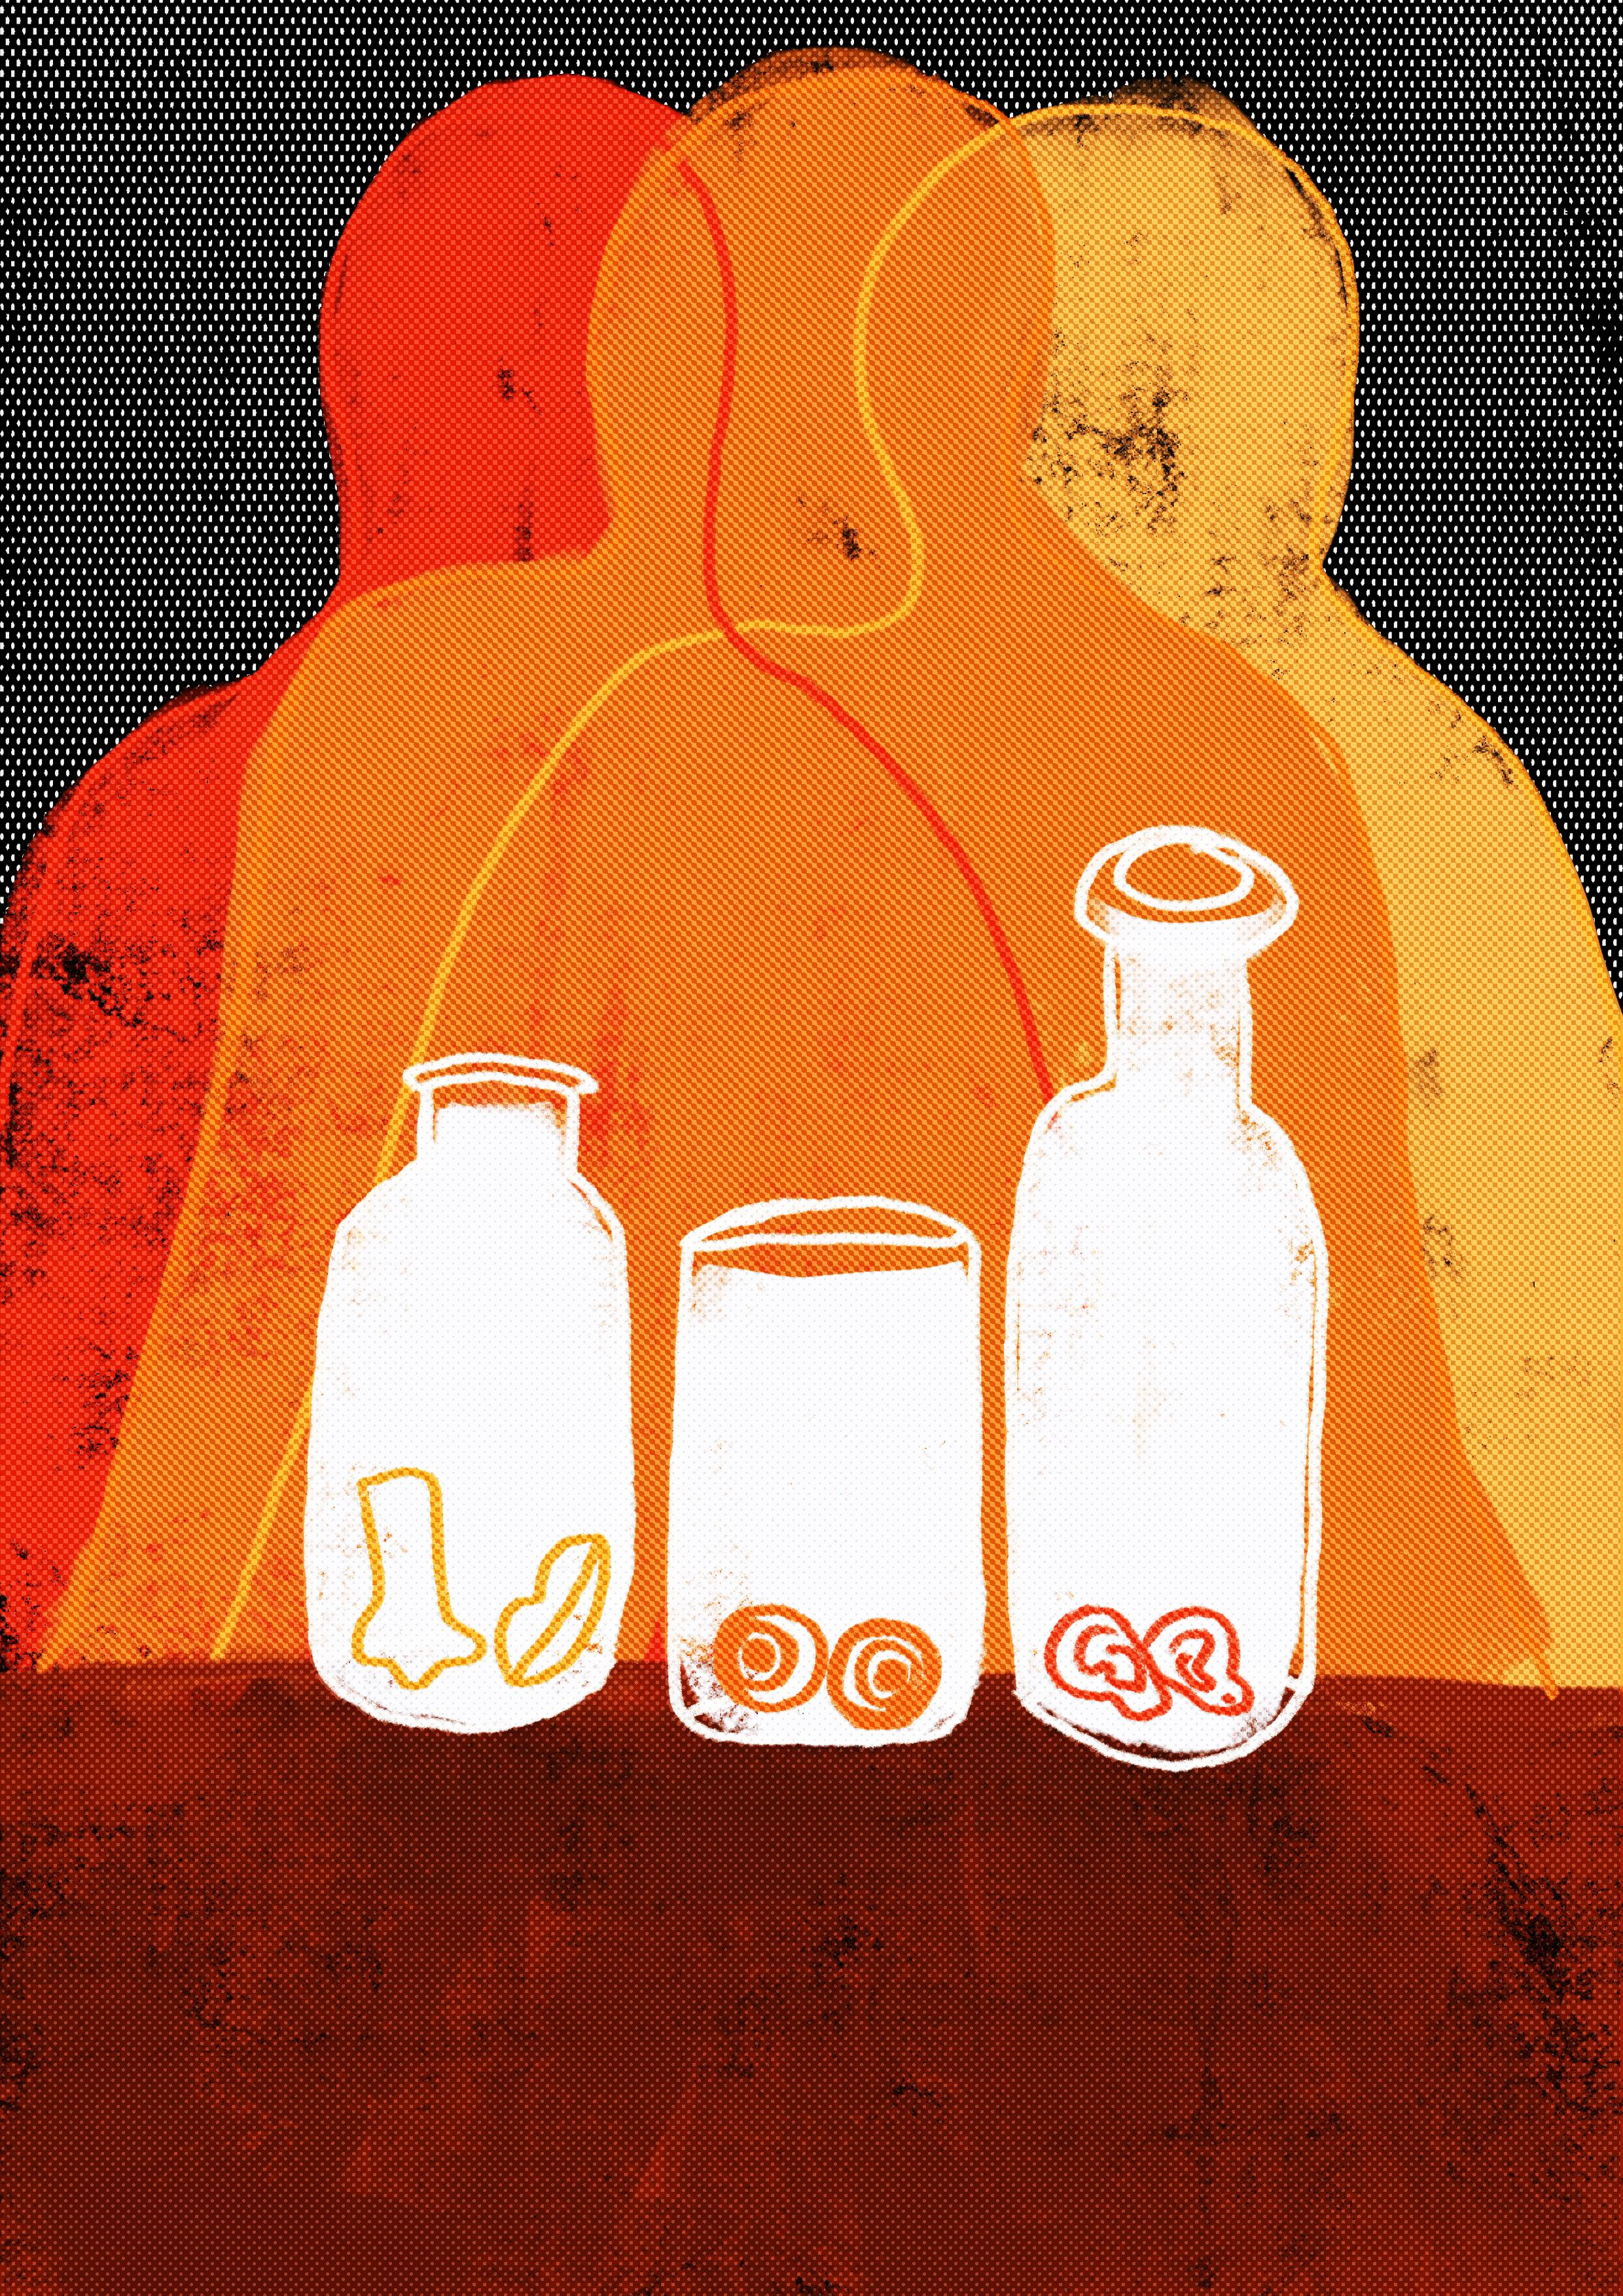 Digital image of three figures in orange together with three clear jars in front containing ears, a mouth and a nose.